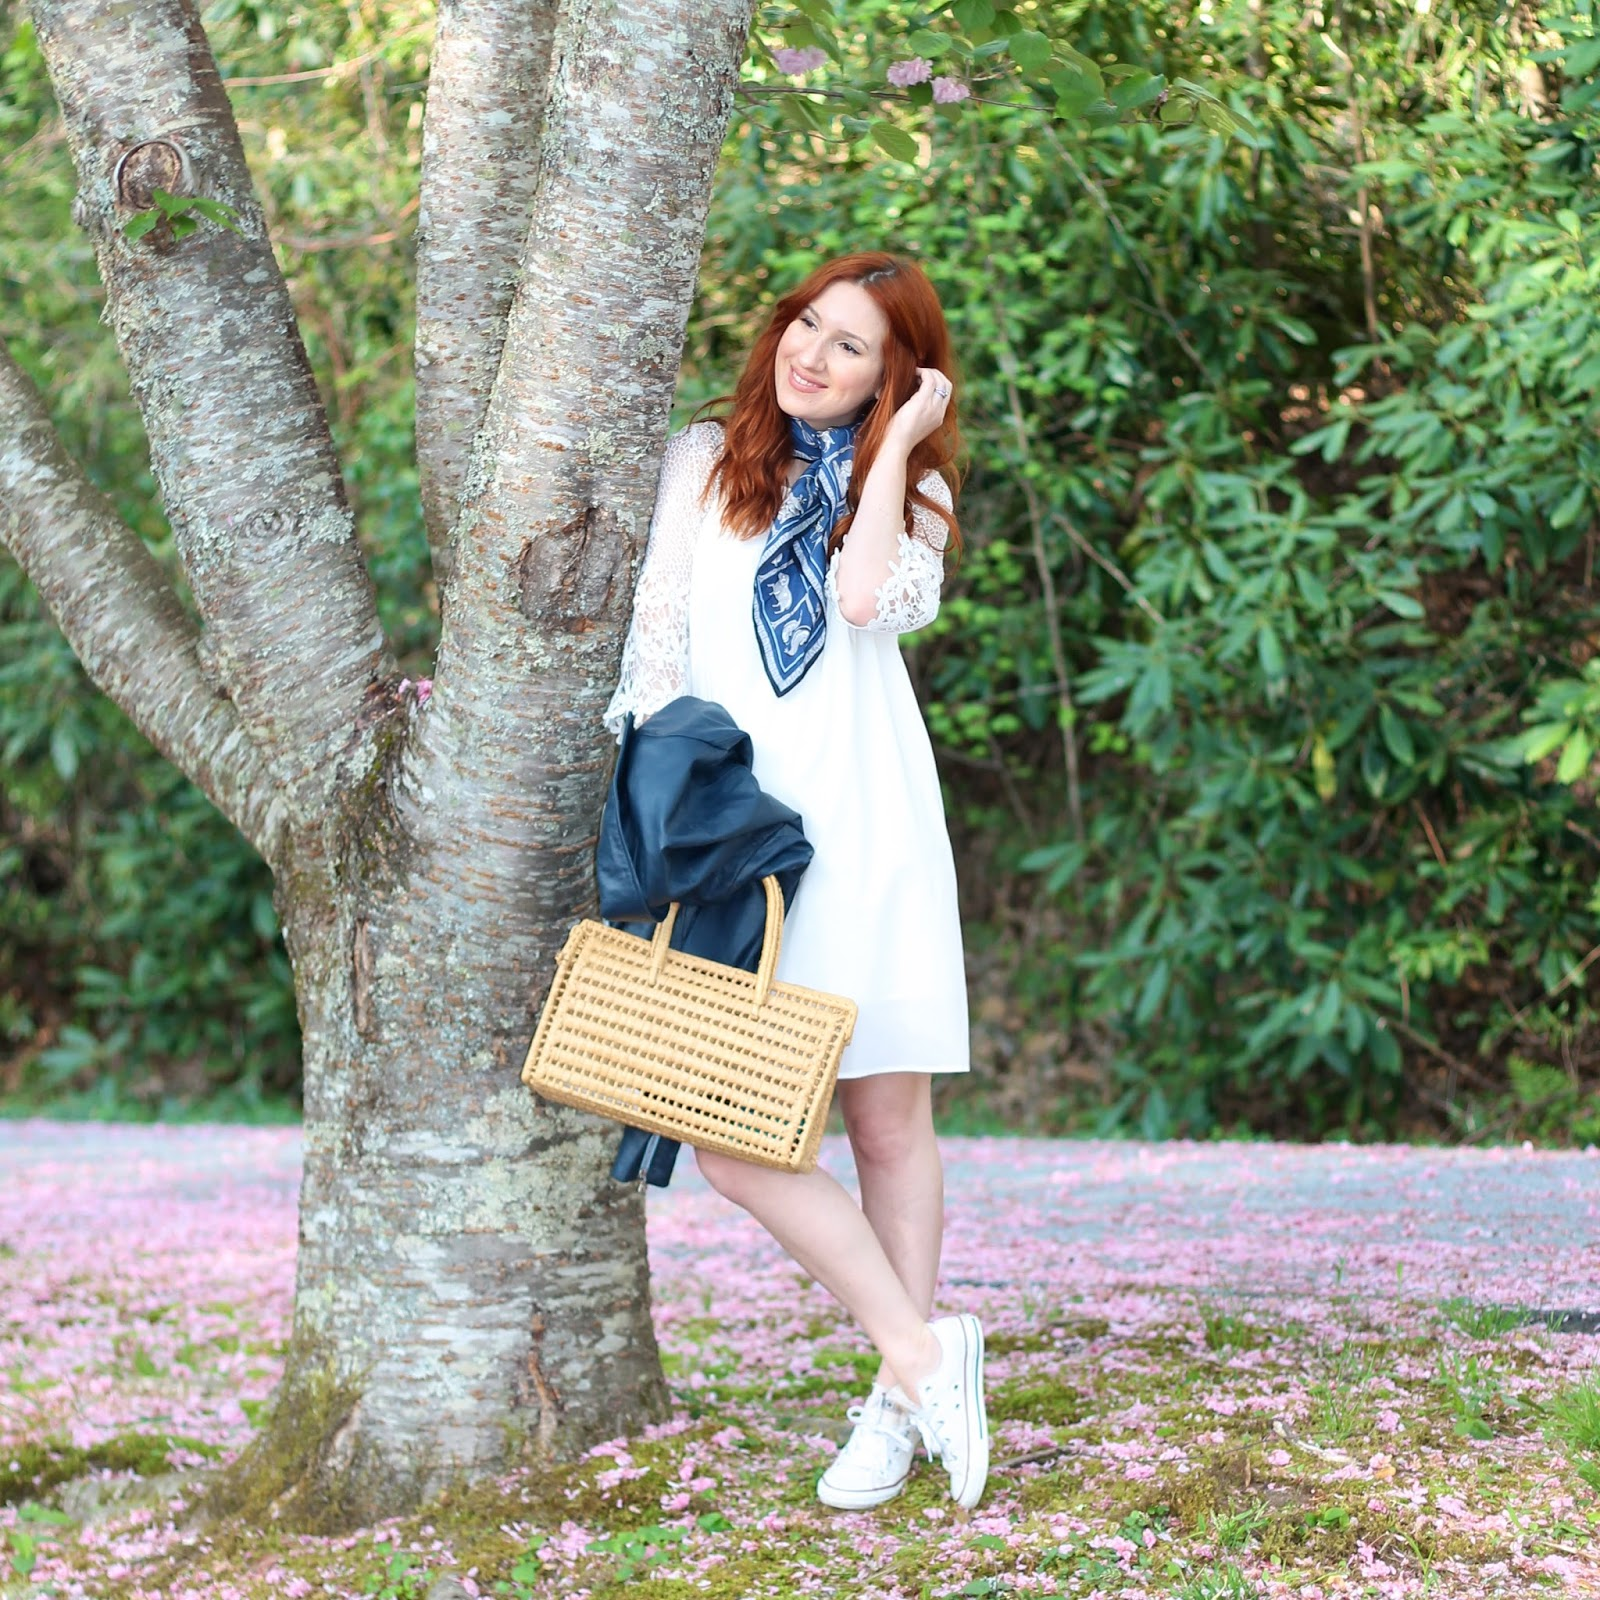 outfits, scarves, how to wear scarves, how to style scarves, little white dress style, little white dress outfit ideas, how to wear sneakers with a dress, sneakers and dresses